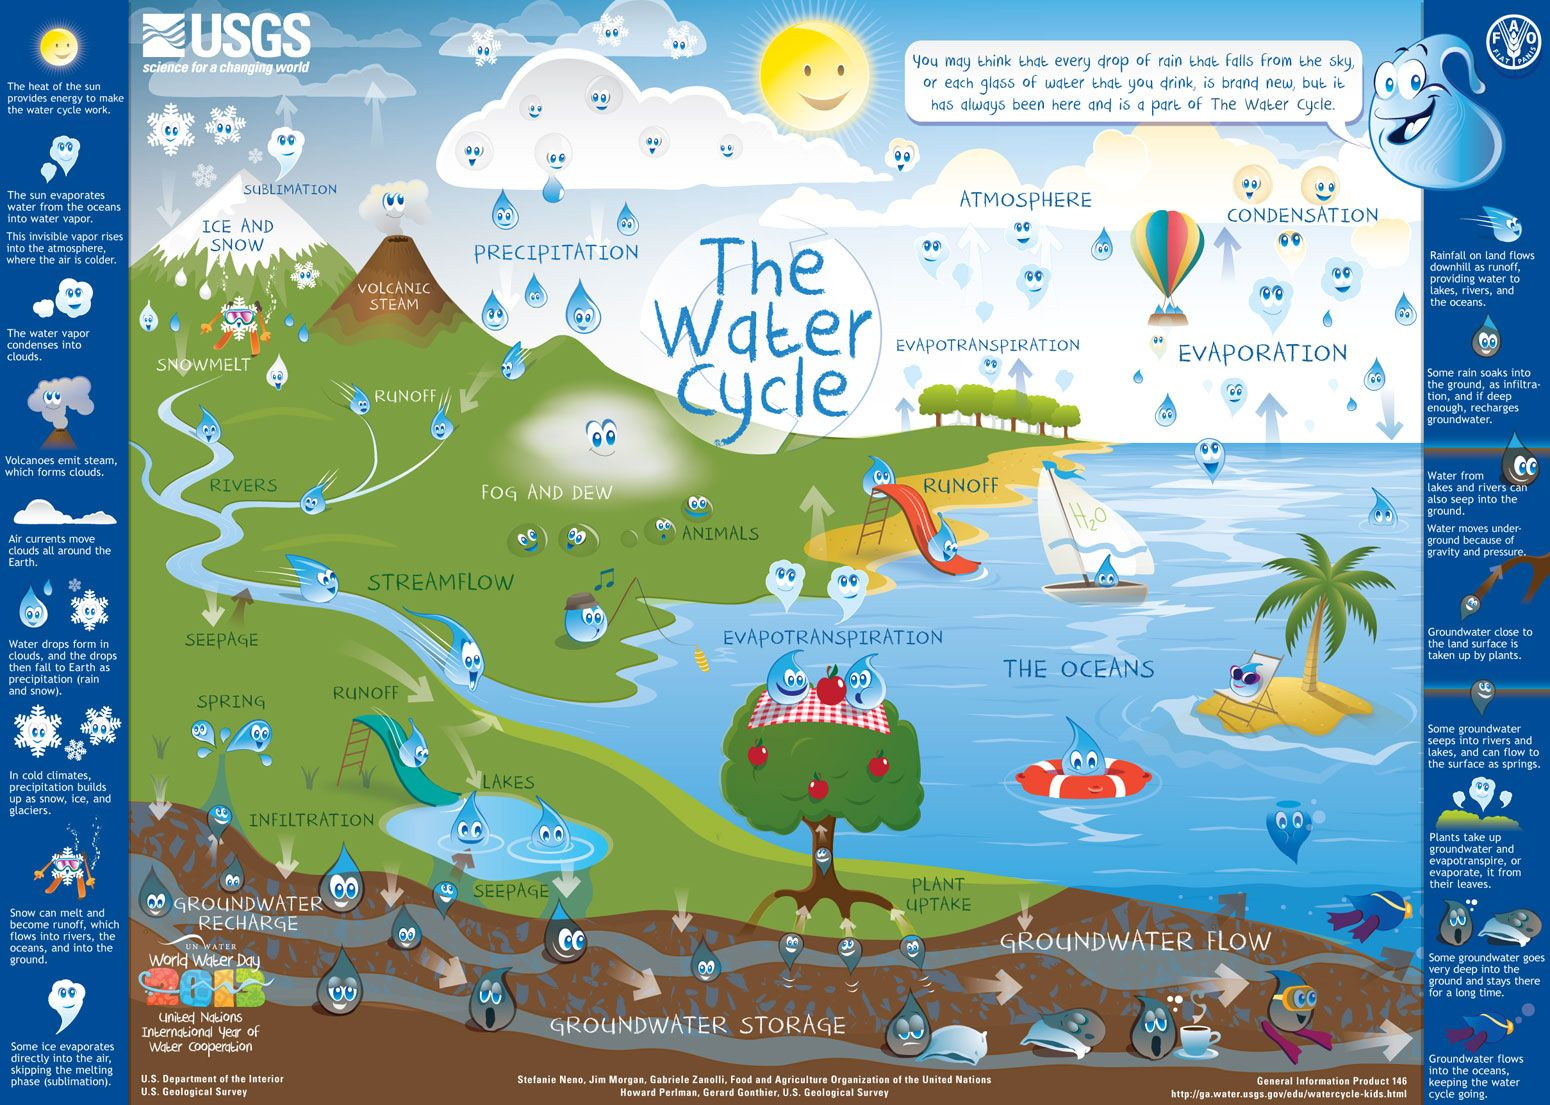 printable water cycle placemat or poster. the u.s. geological survey